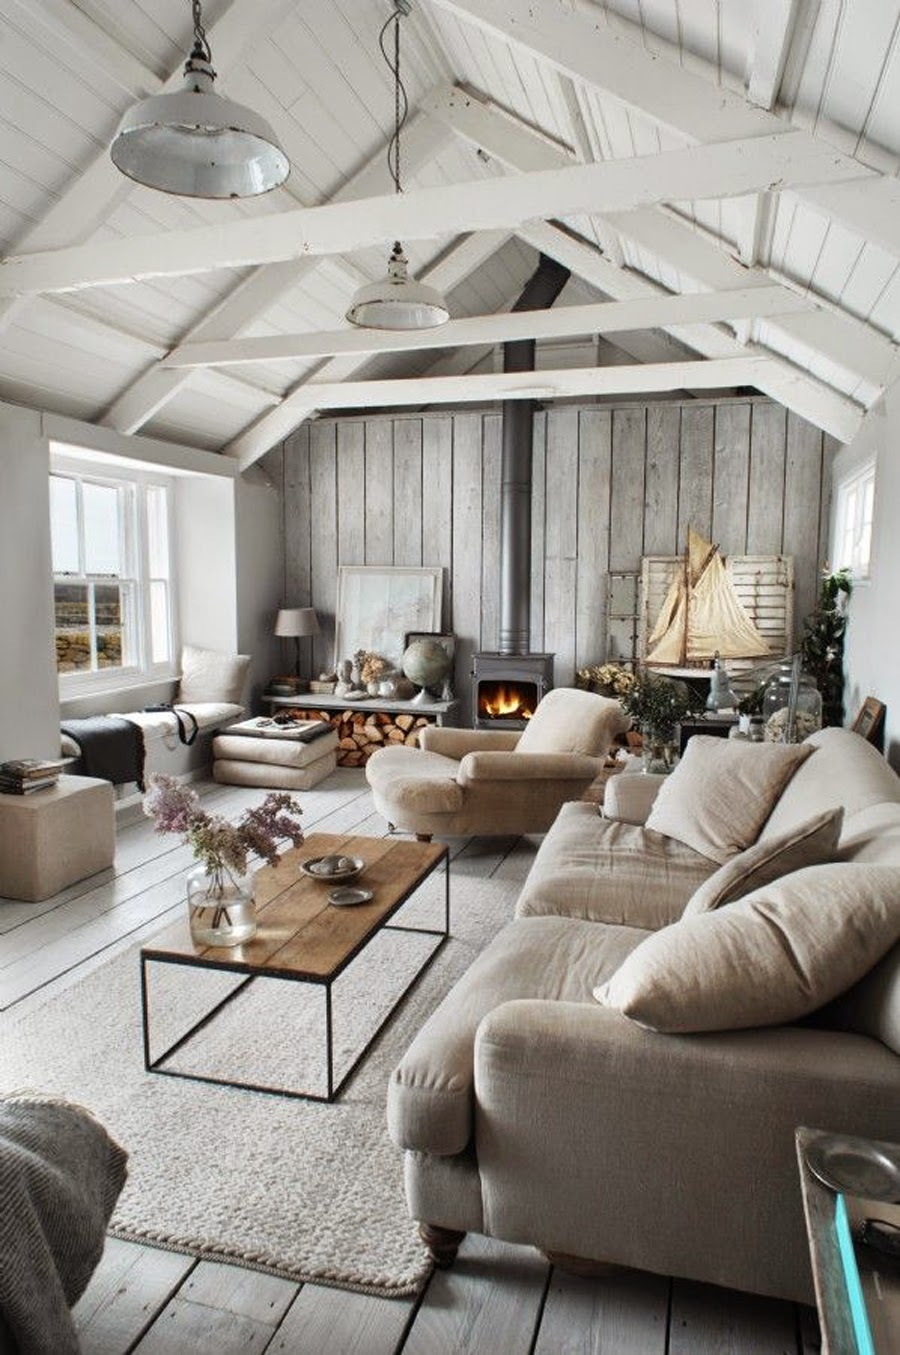 Charmant Expose Your Rusticity With Exposed Beams